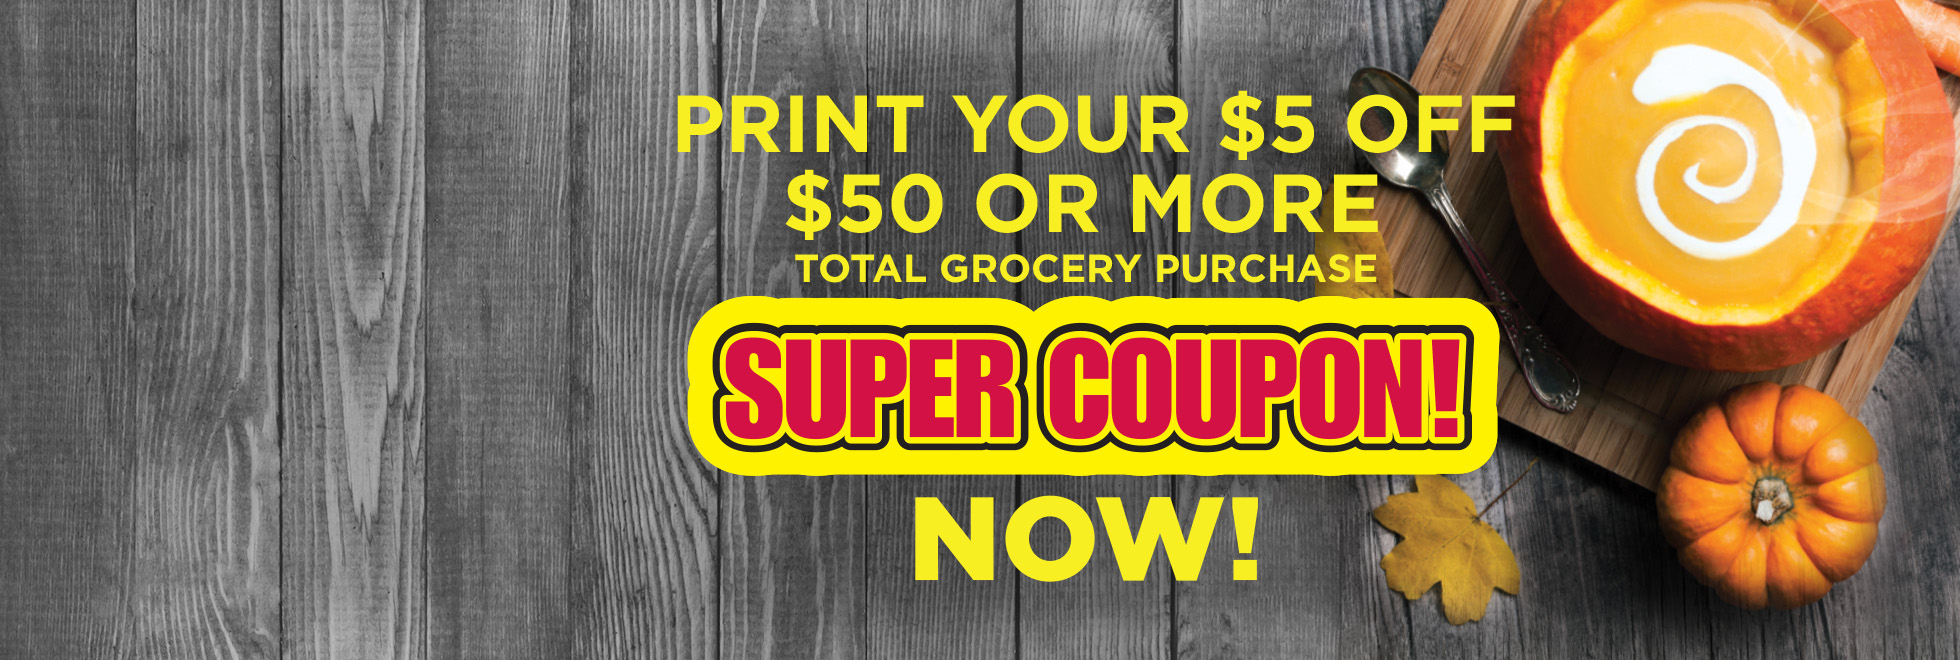 Exclusive $5 off $50 Super Coupon